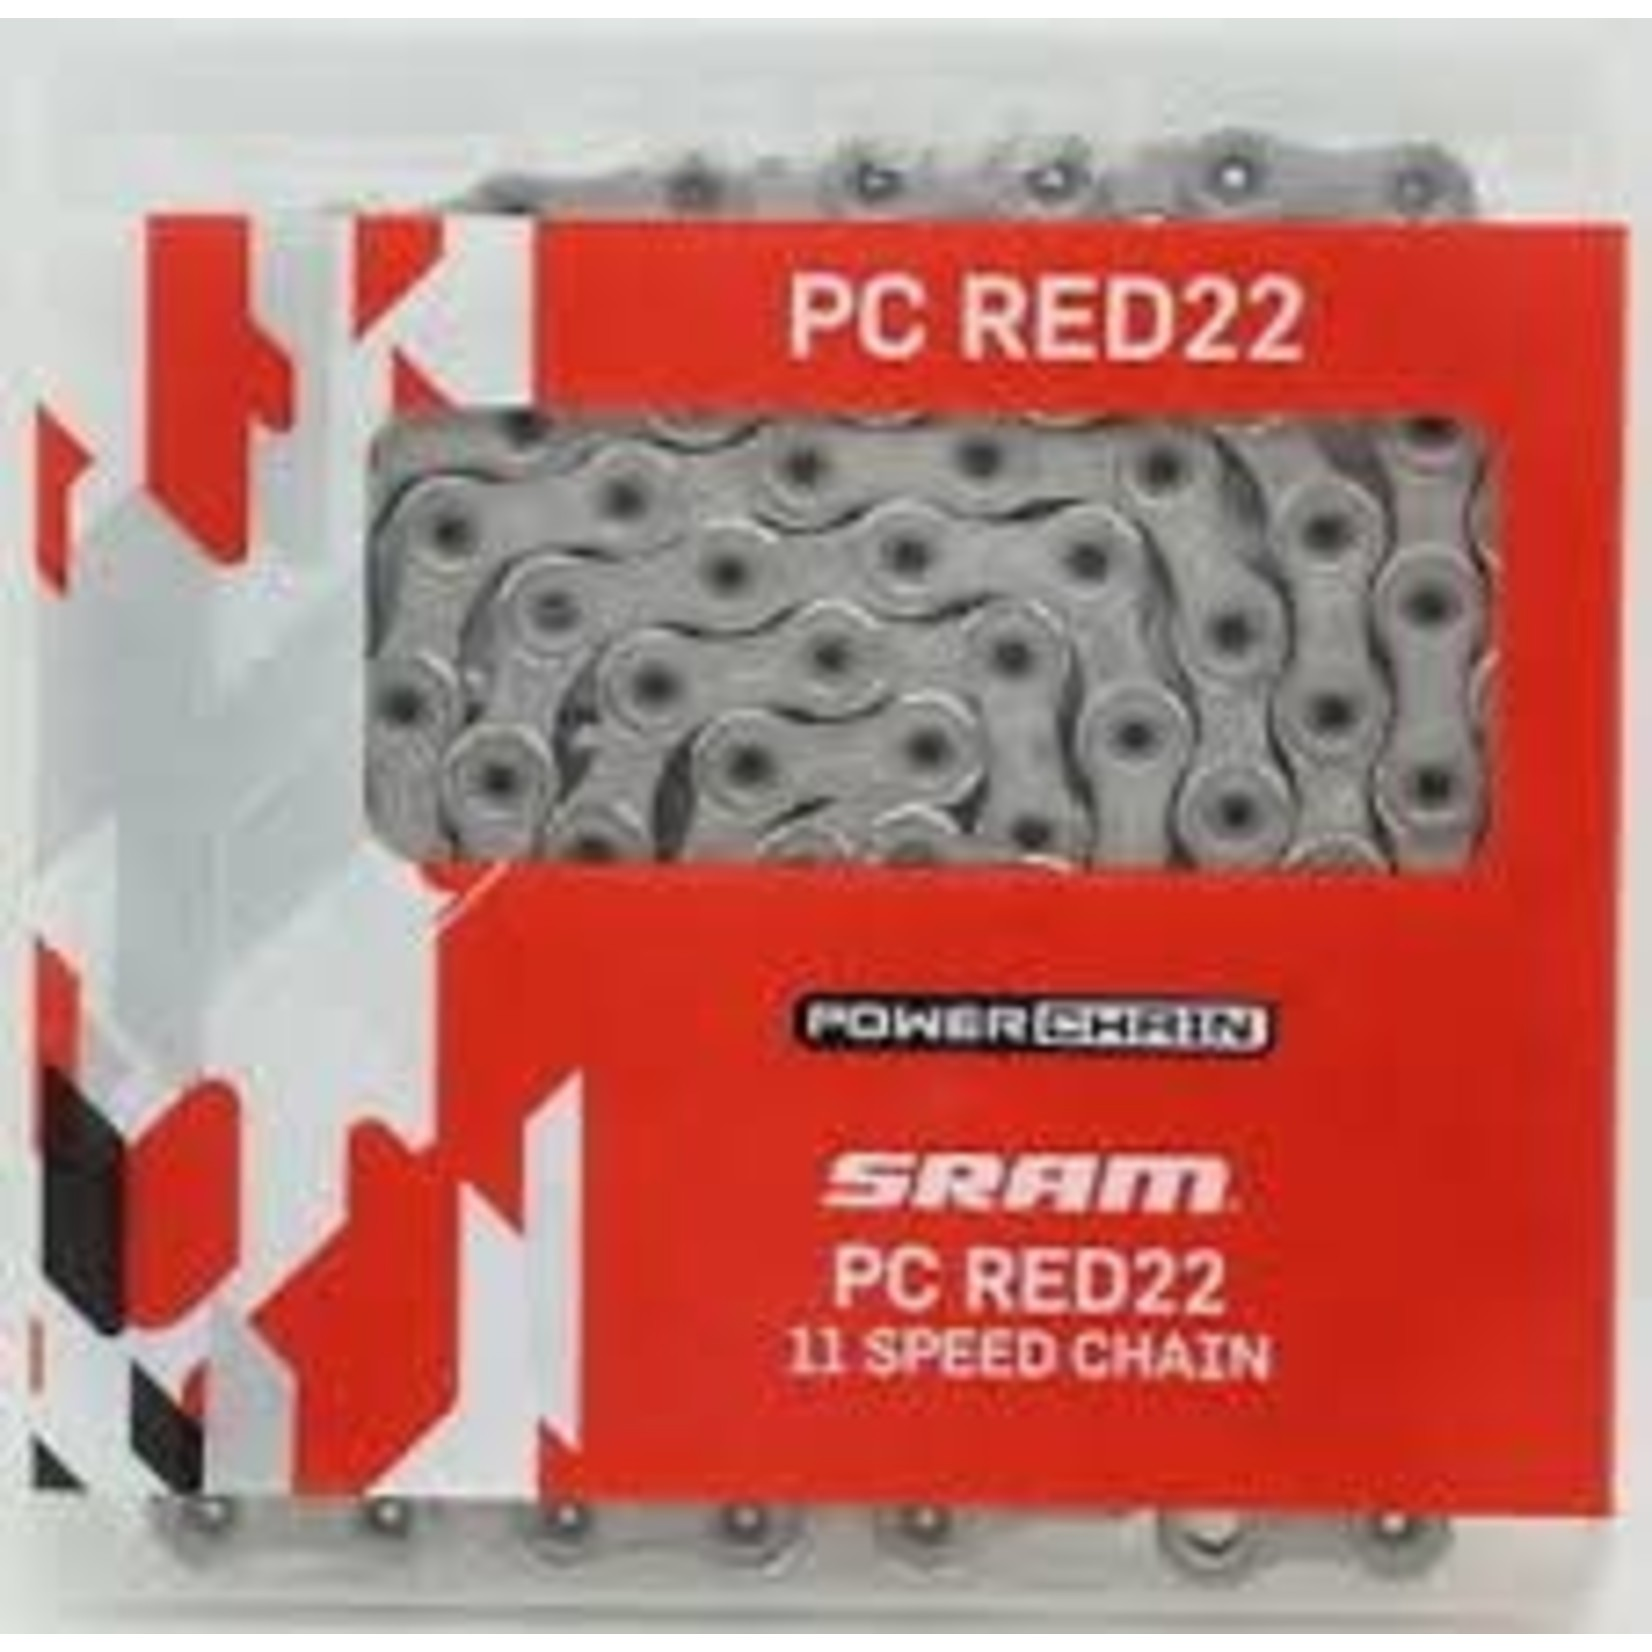 SRAM Red Power Chain PC Red22 11Sp